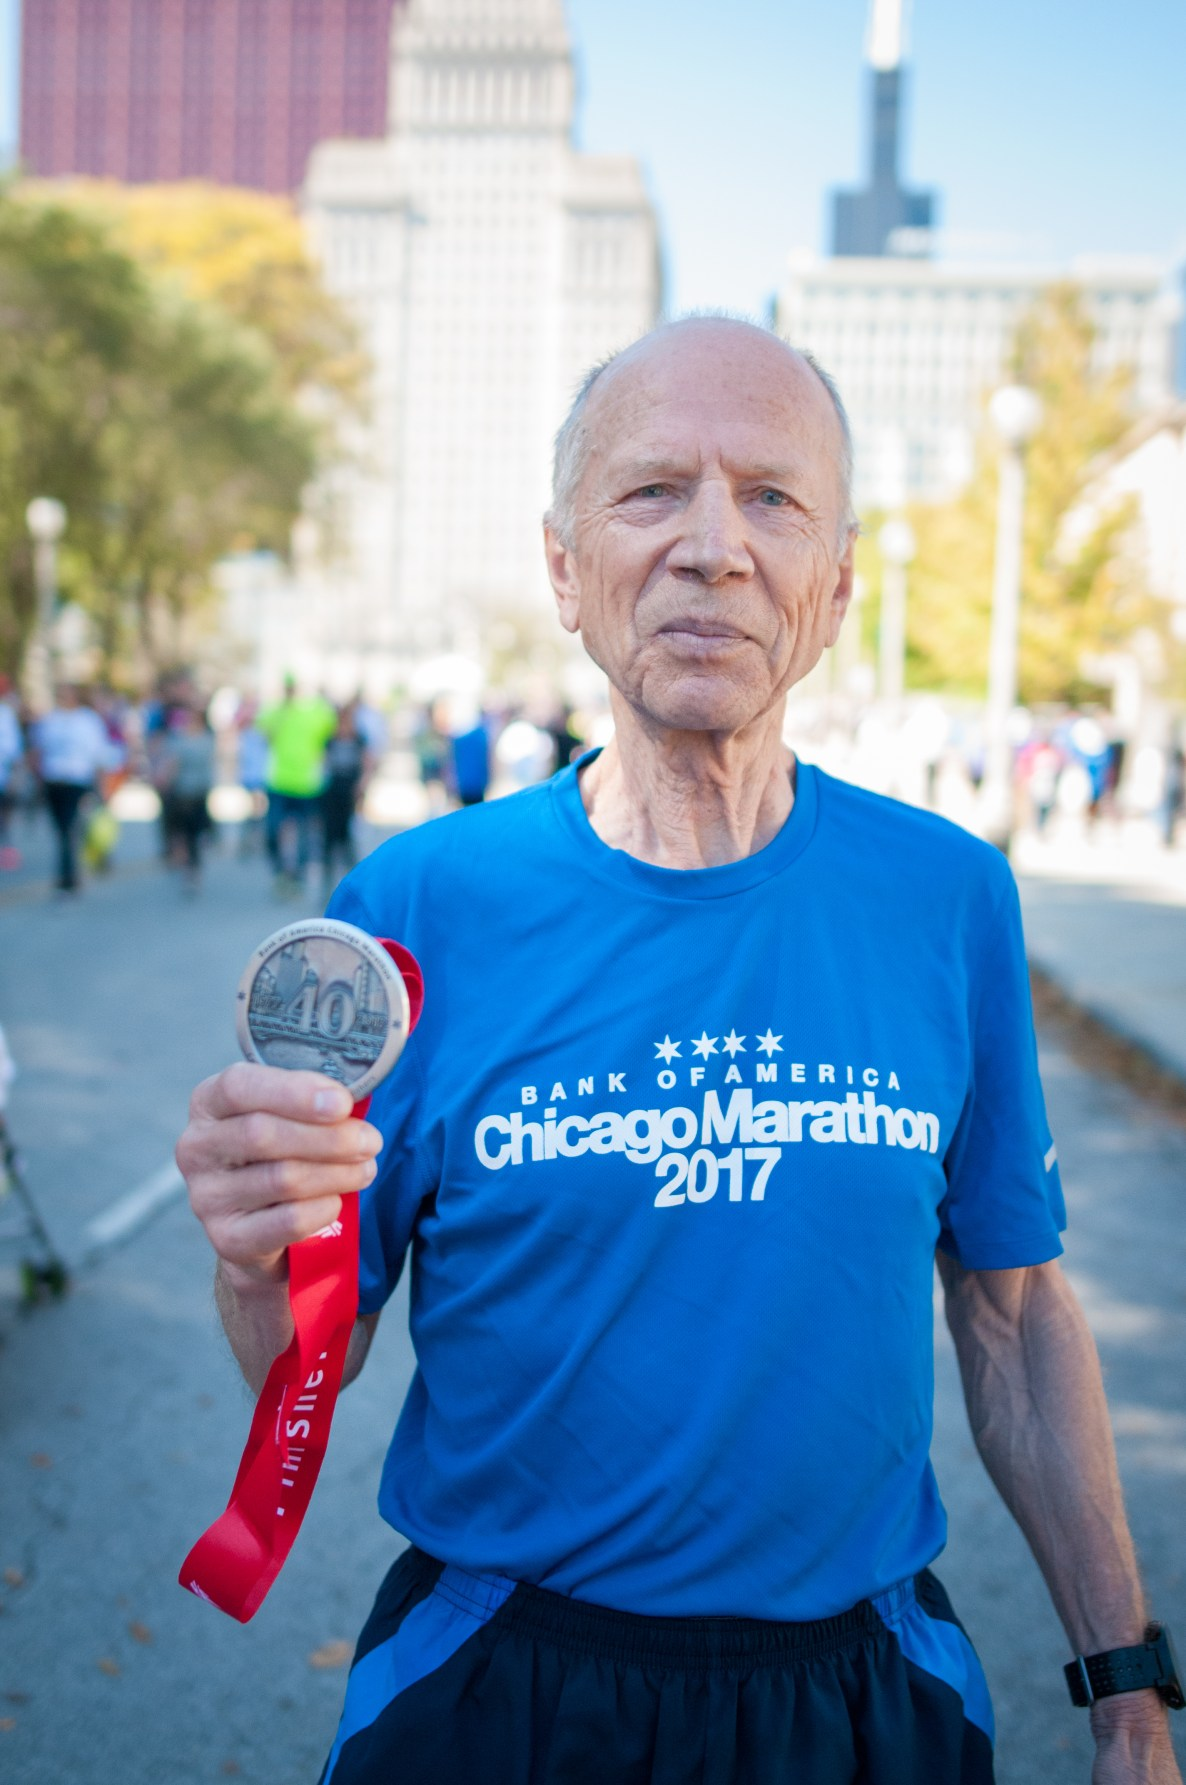 Dmytro Lebedev - first place in Chicago marathon age 75-79